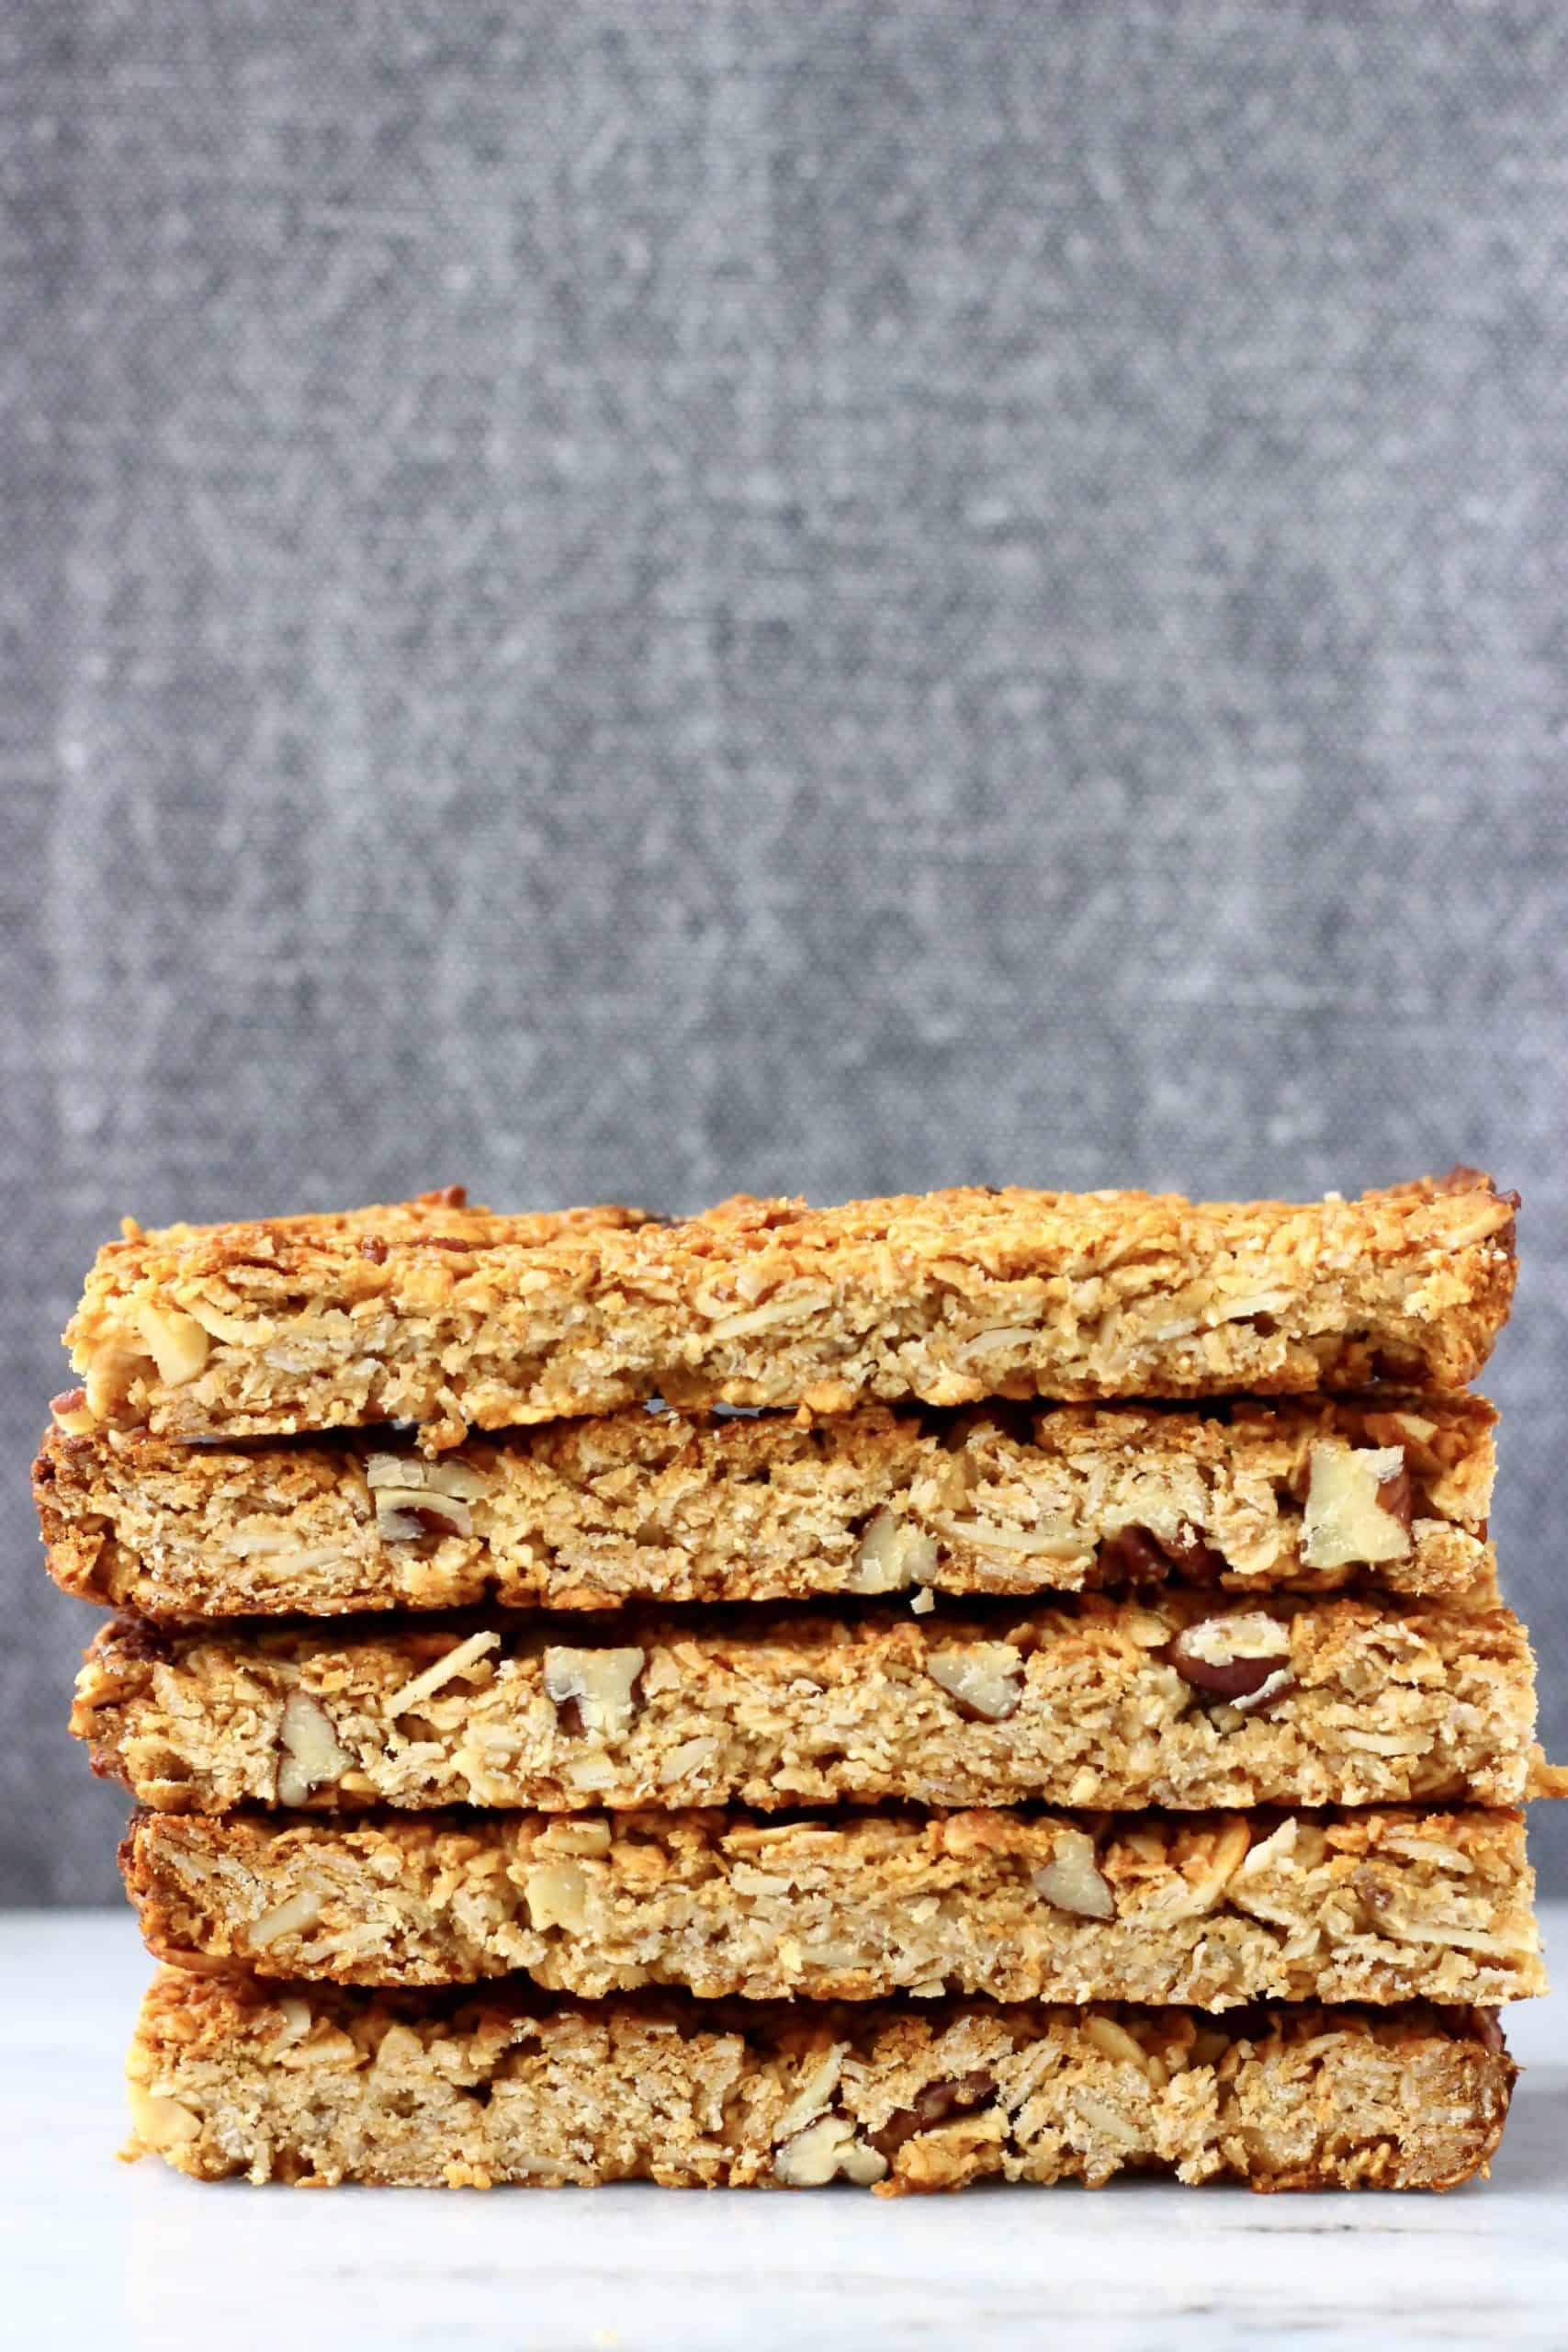 Five golden brown granola bars stacked on top of each other